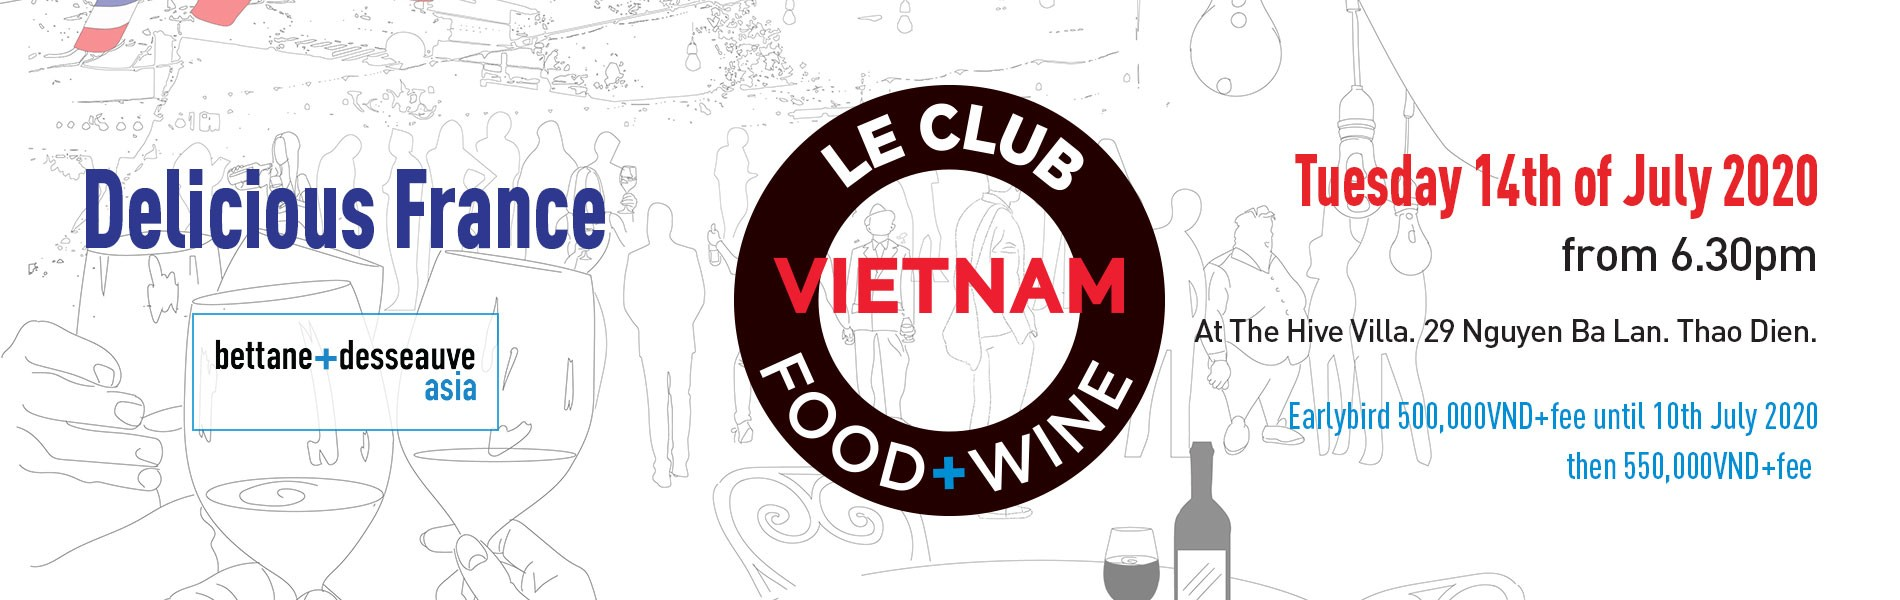 Le Club - Delicious France - Pop Up  - Ho Chi Minh City